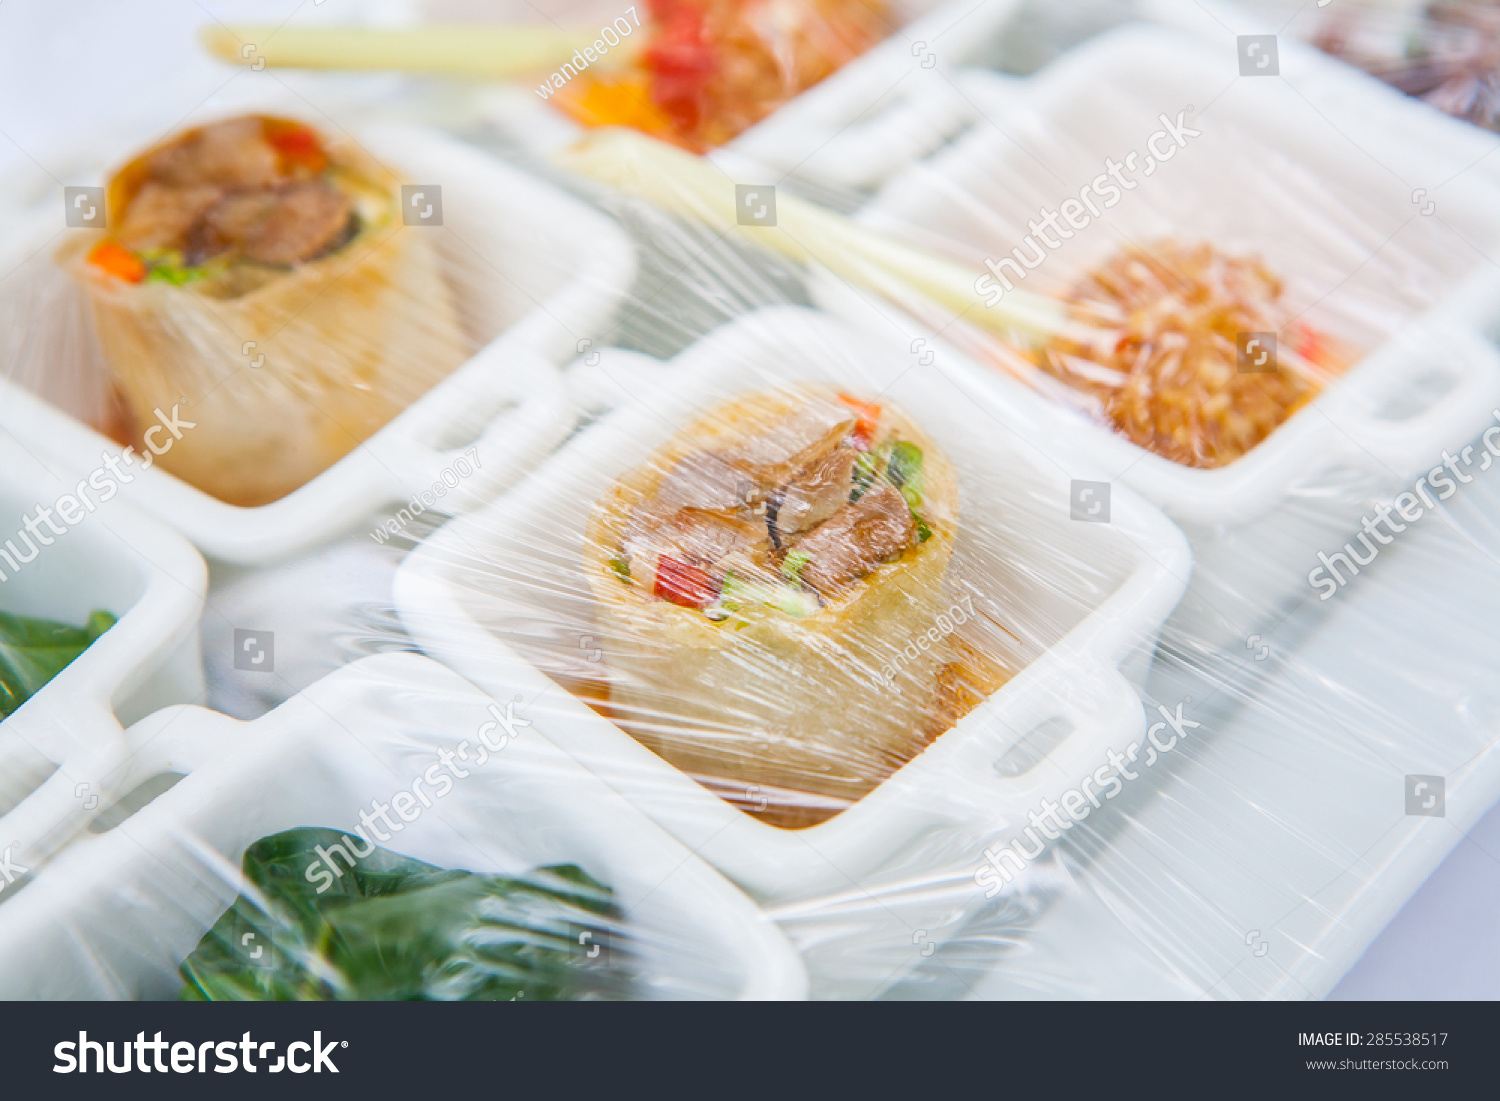 Canape decoration foods that wrapped plastic stock photo for Plastic canape dishes